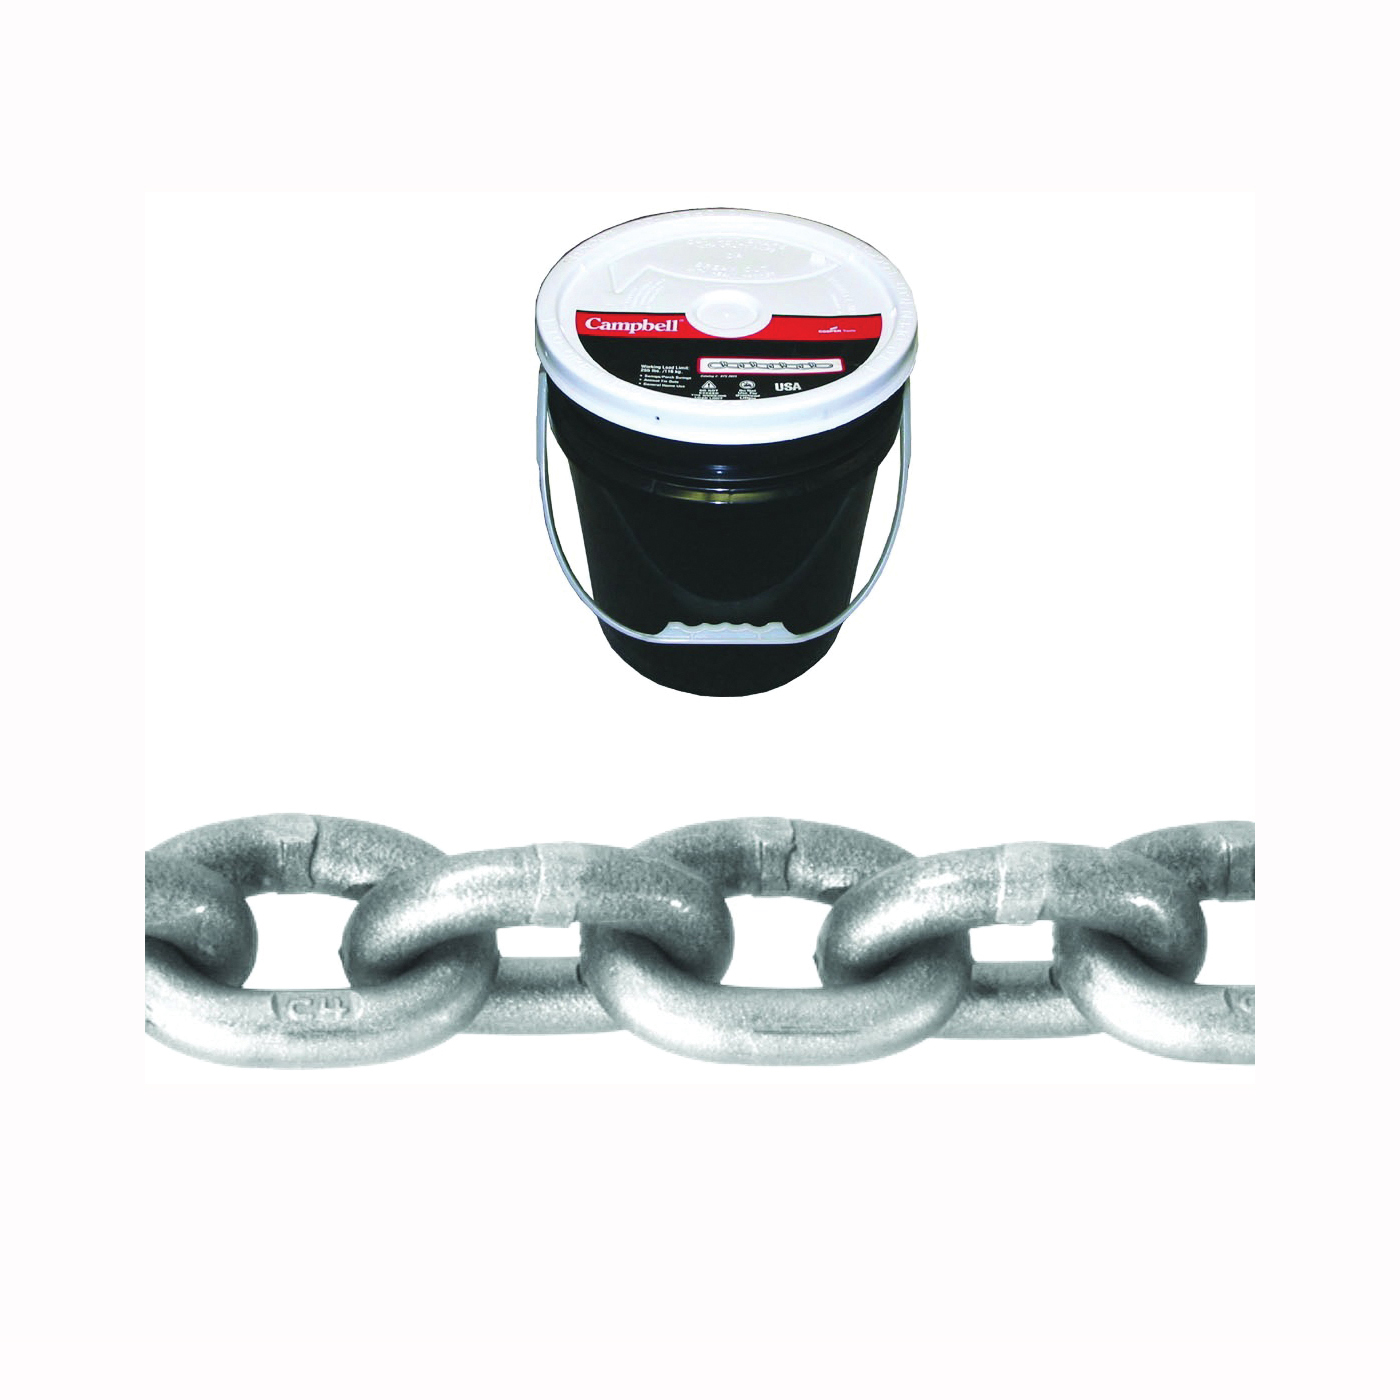 Picture of Campbell 0181623 High-Test Chain, 3/8 in Trade, 75 ft L, 5400 lb Working Load, 43 Grade, Carbon Steel, Zinc